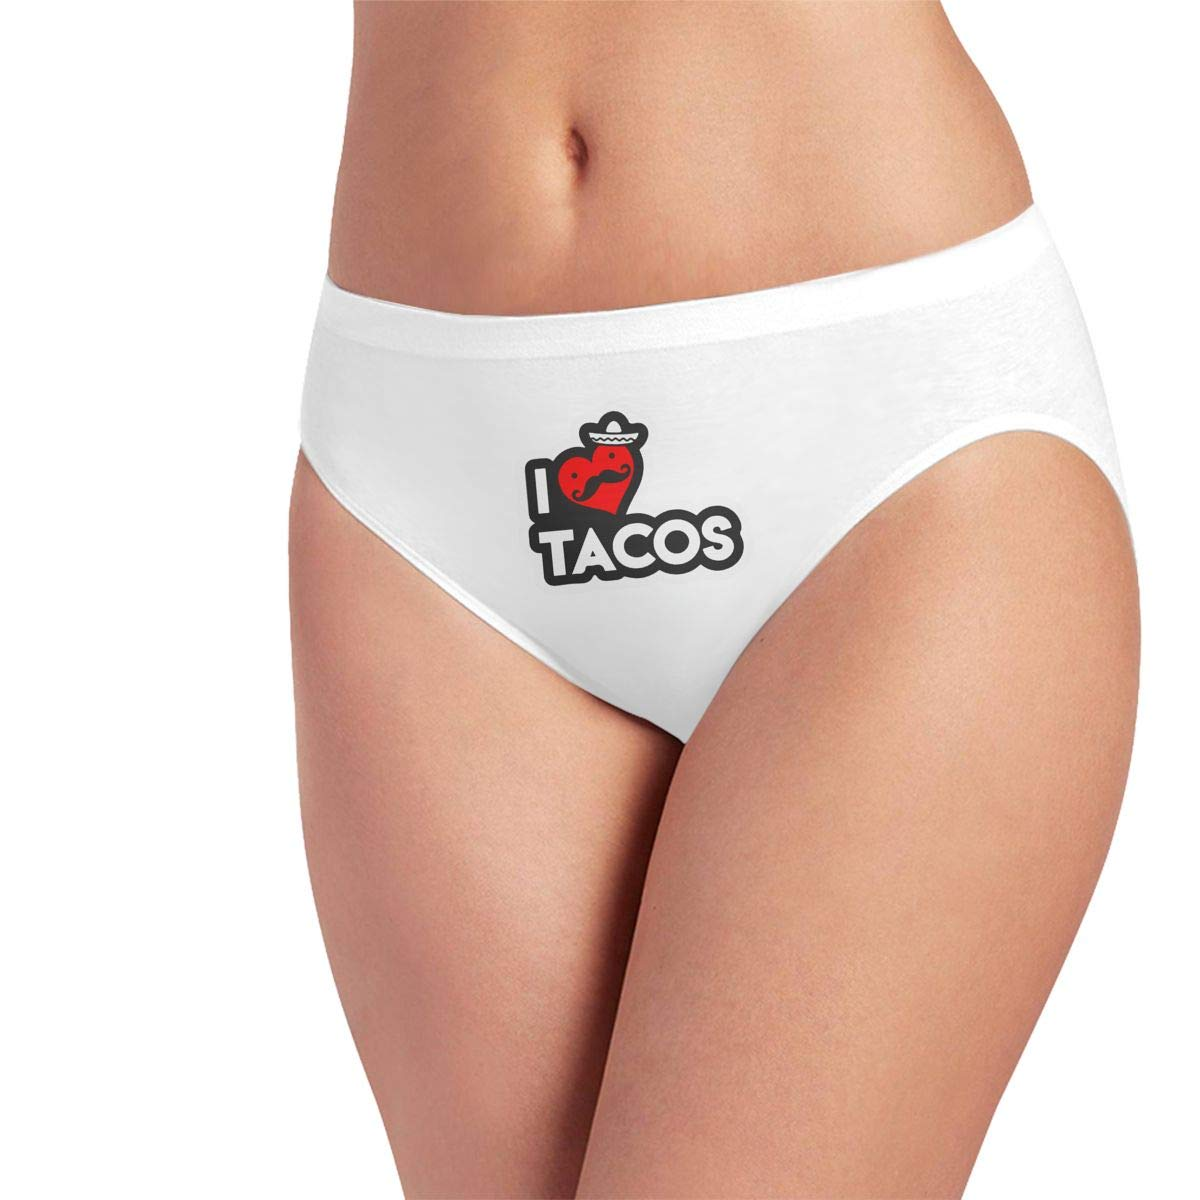 Image result for sexy girl with tacos